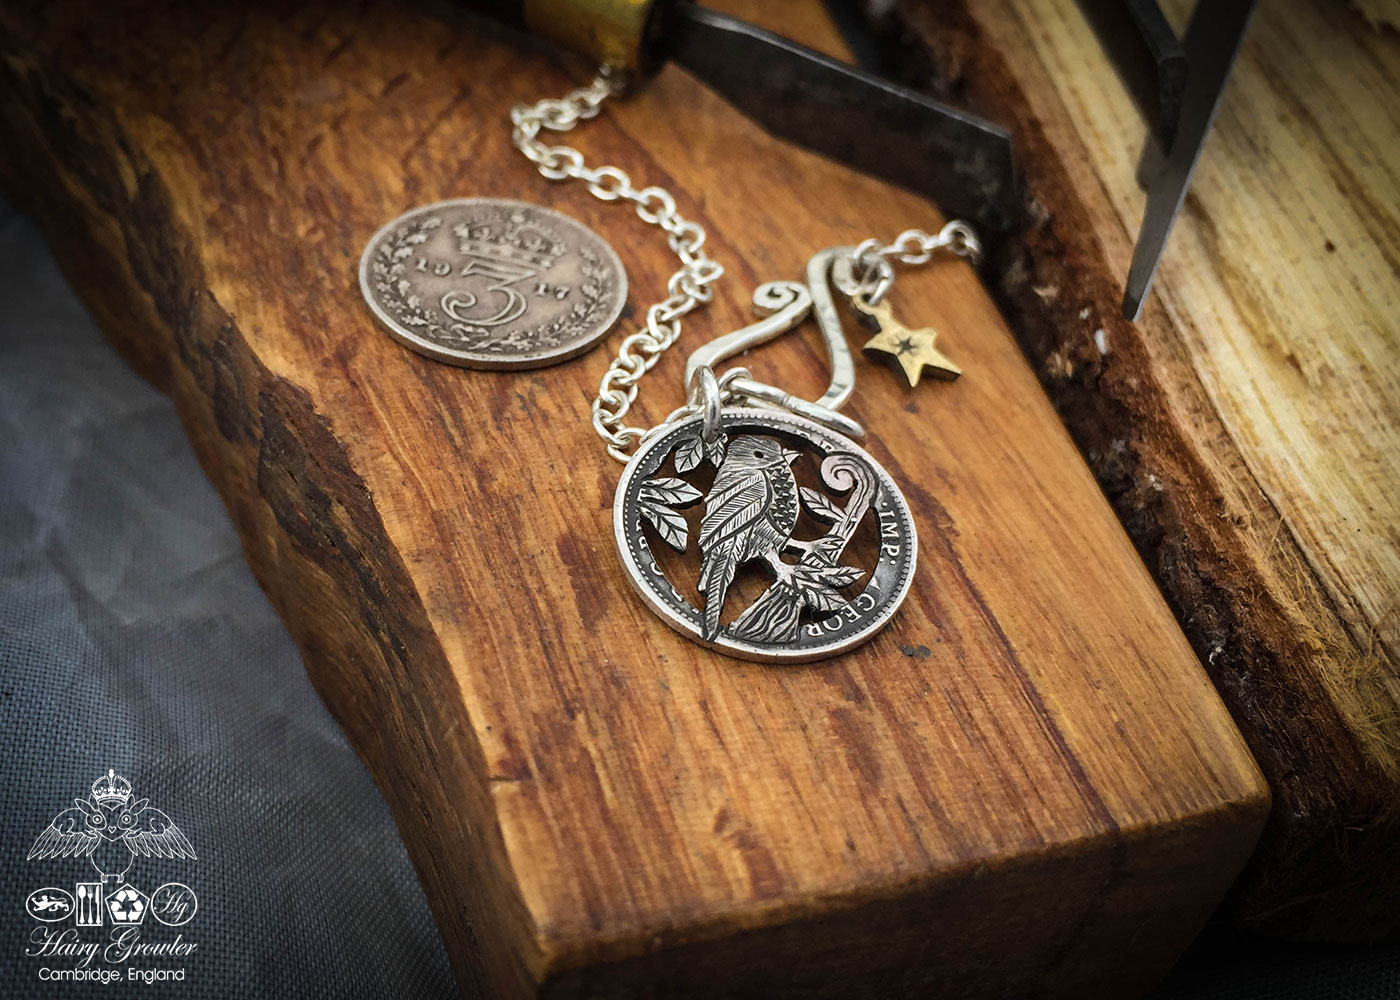 handmade, upcycled, contemporary and original silver coin song thrush necklace pendant